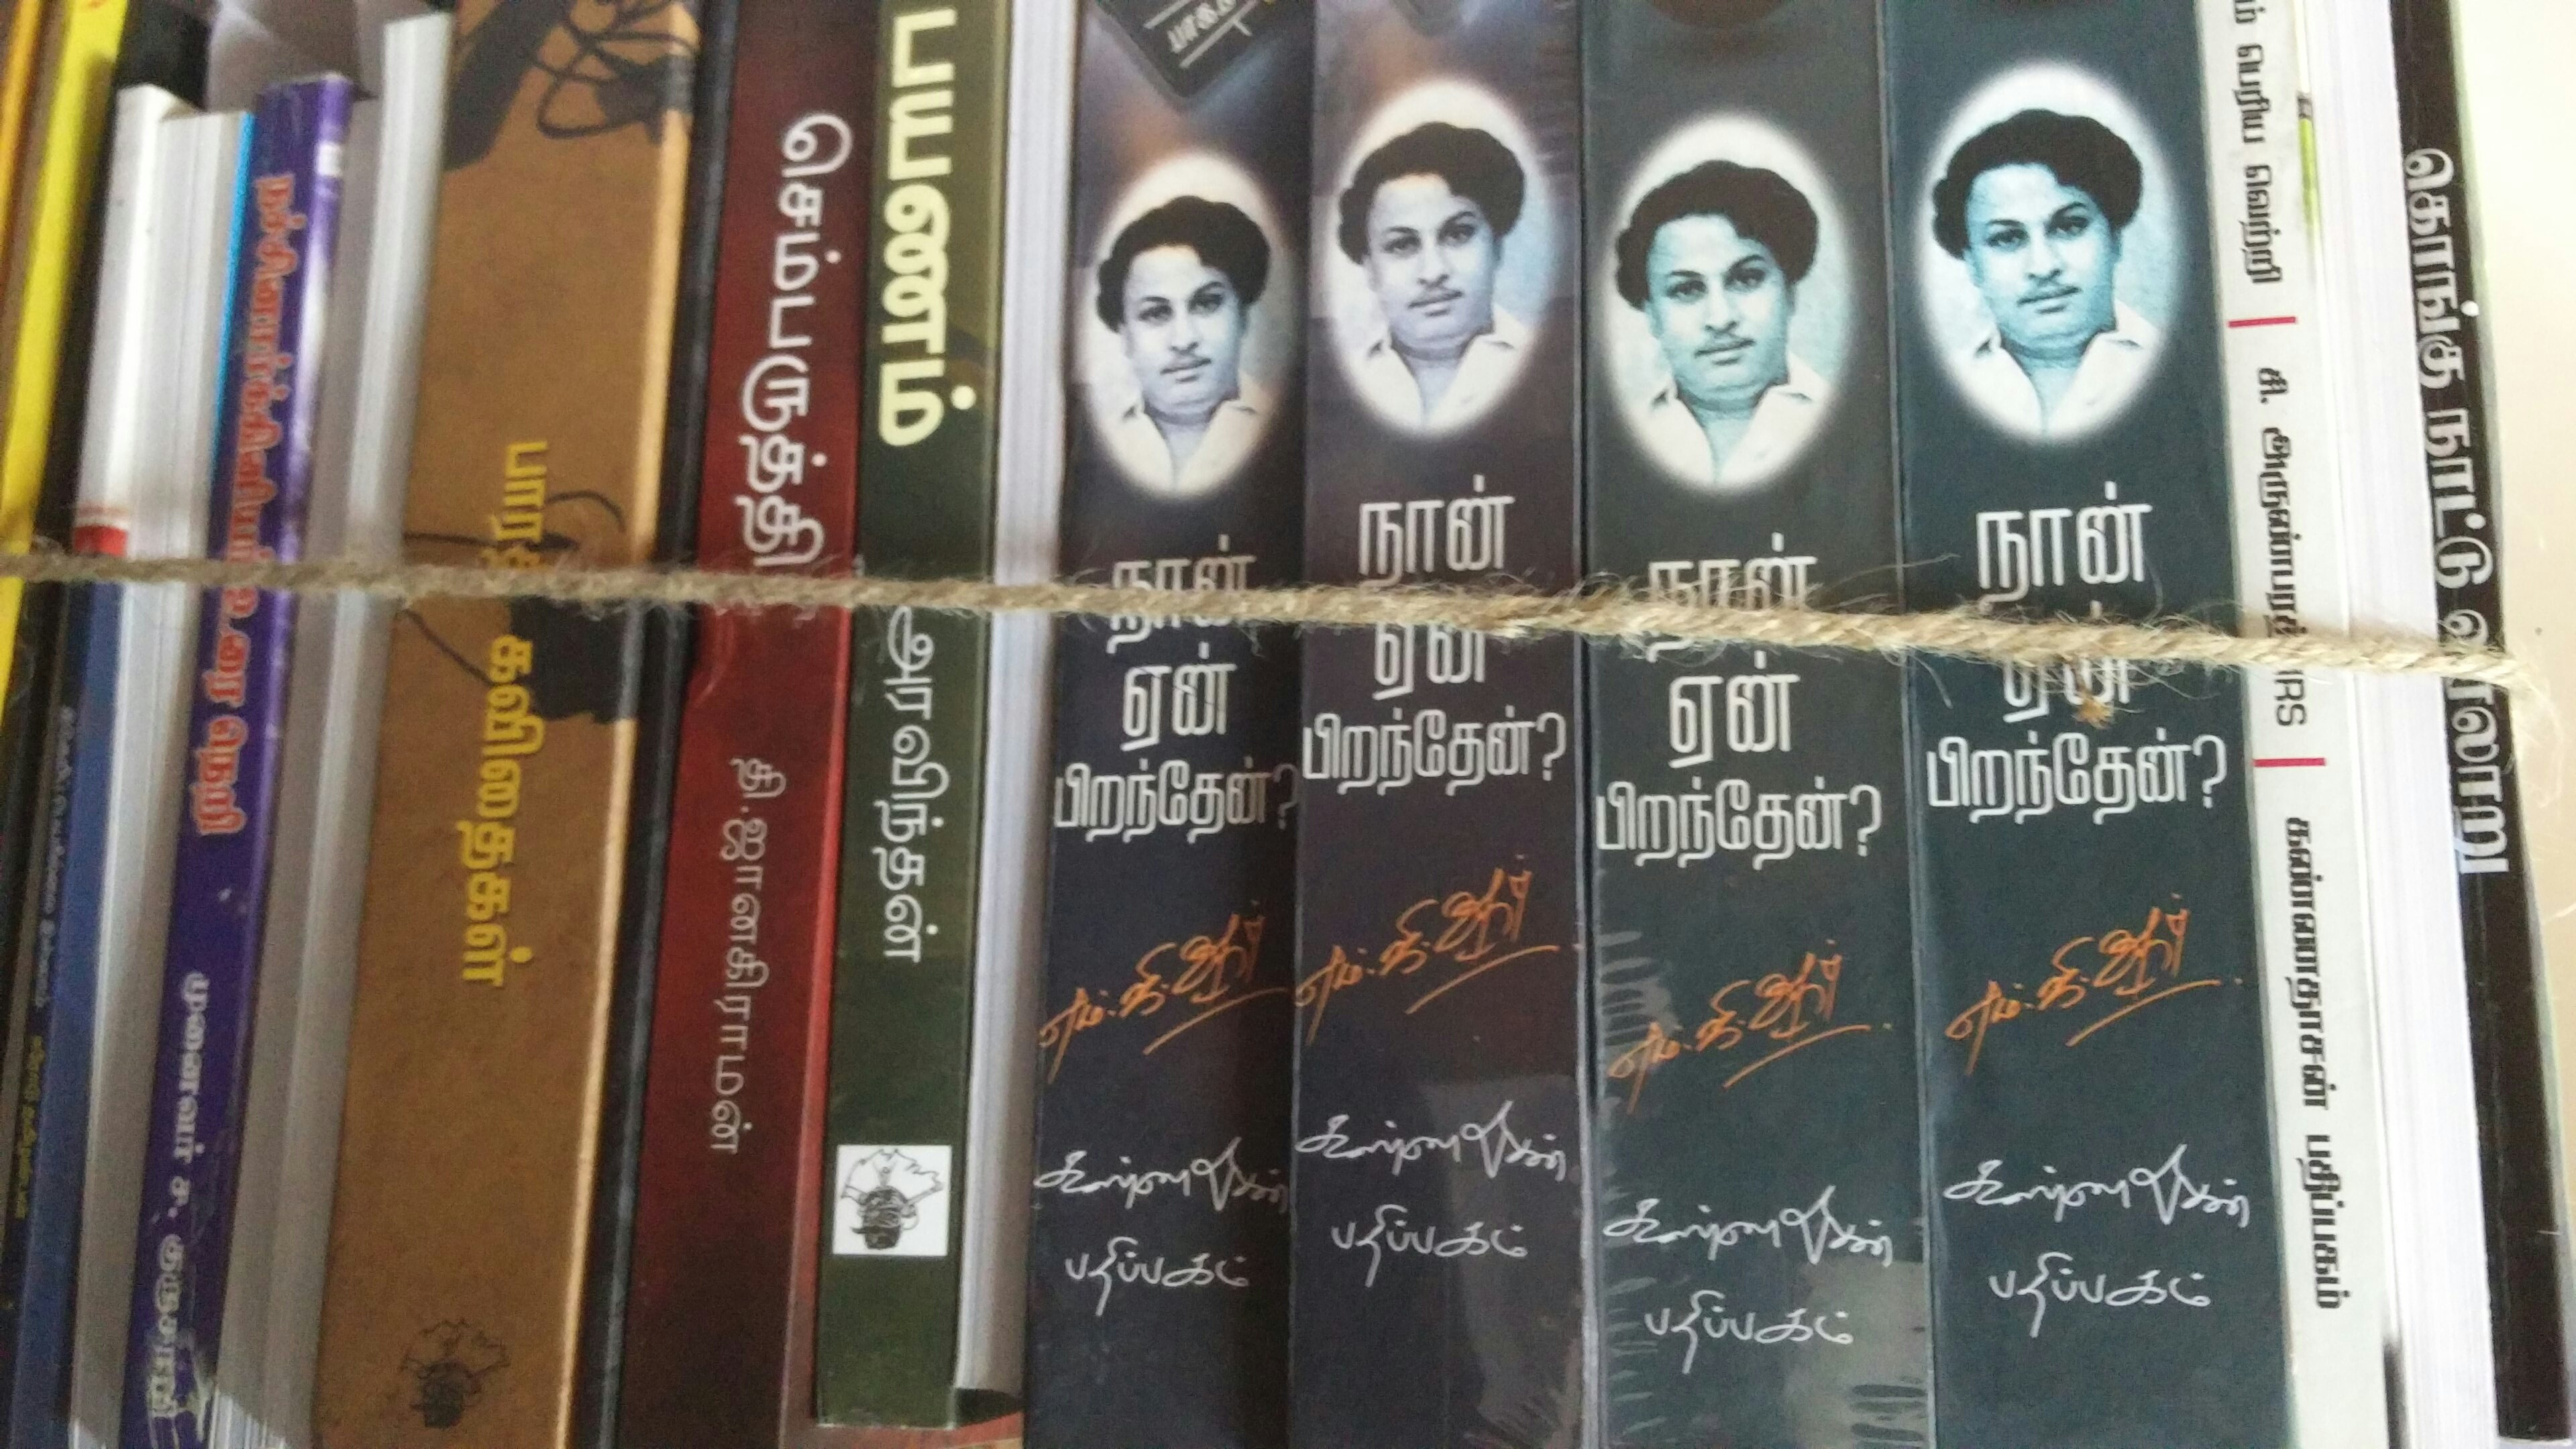 Tamil books received as donations. (Credit: Vinita Govindarajan)